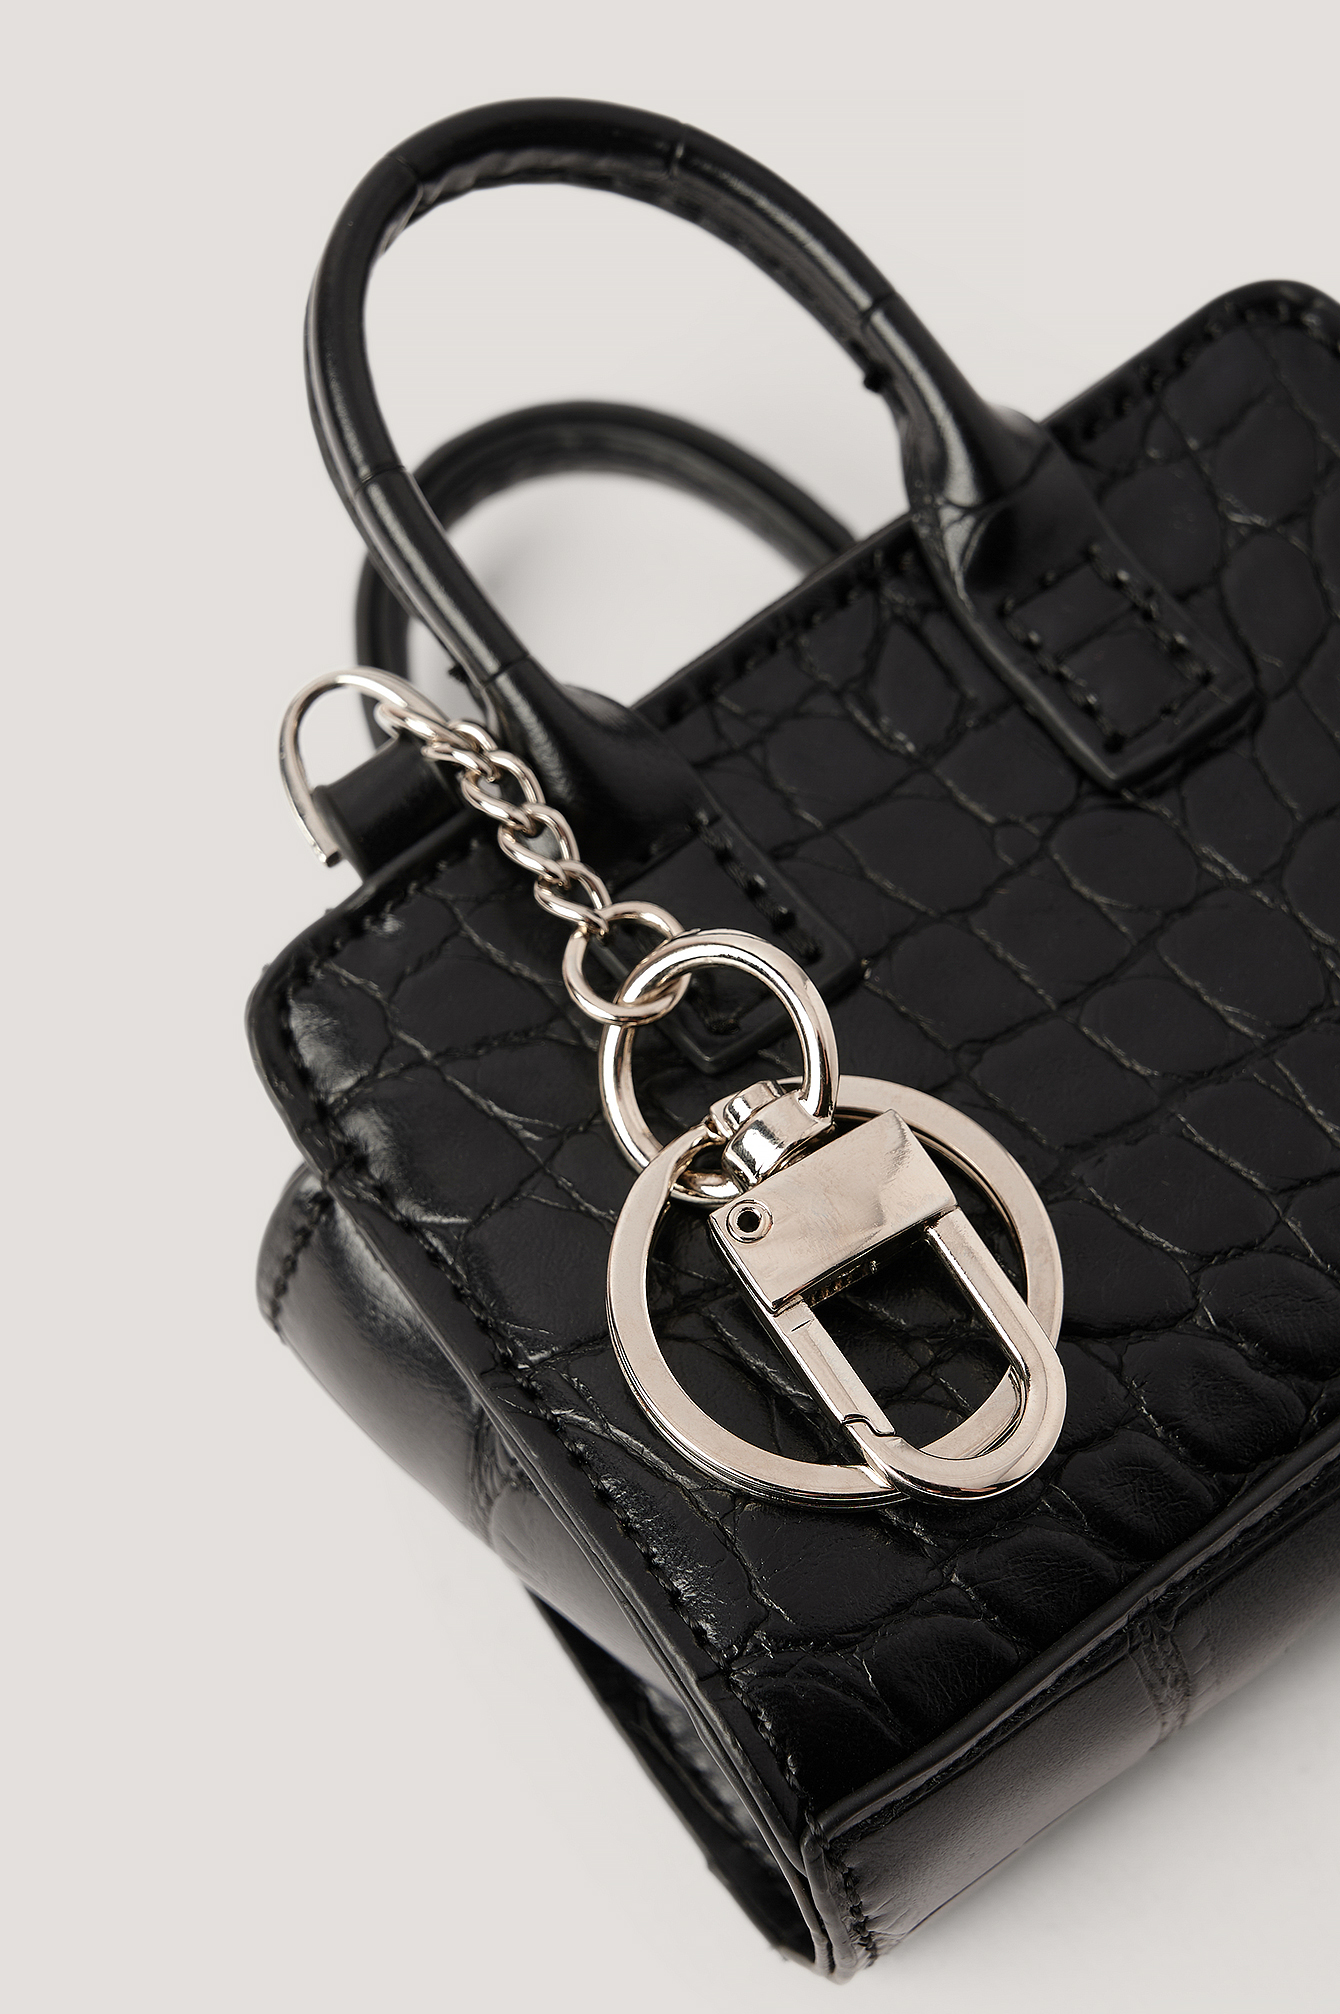 Black Micro Keychain Bag